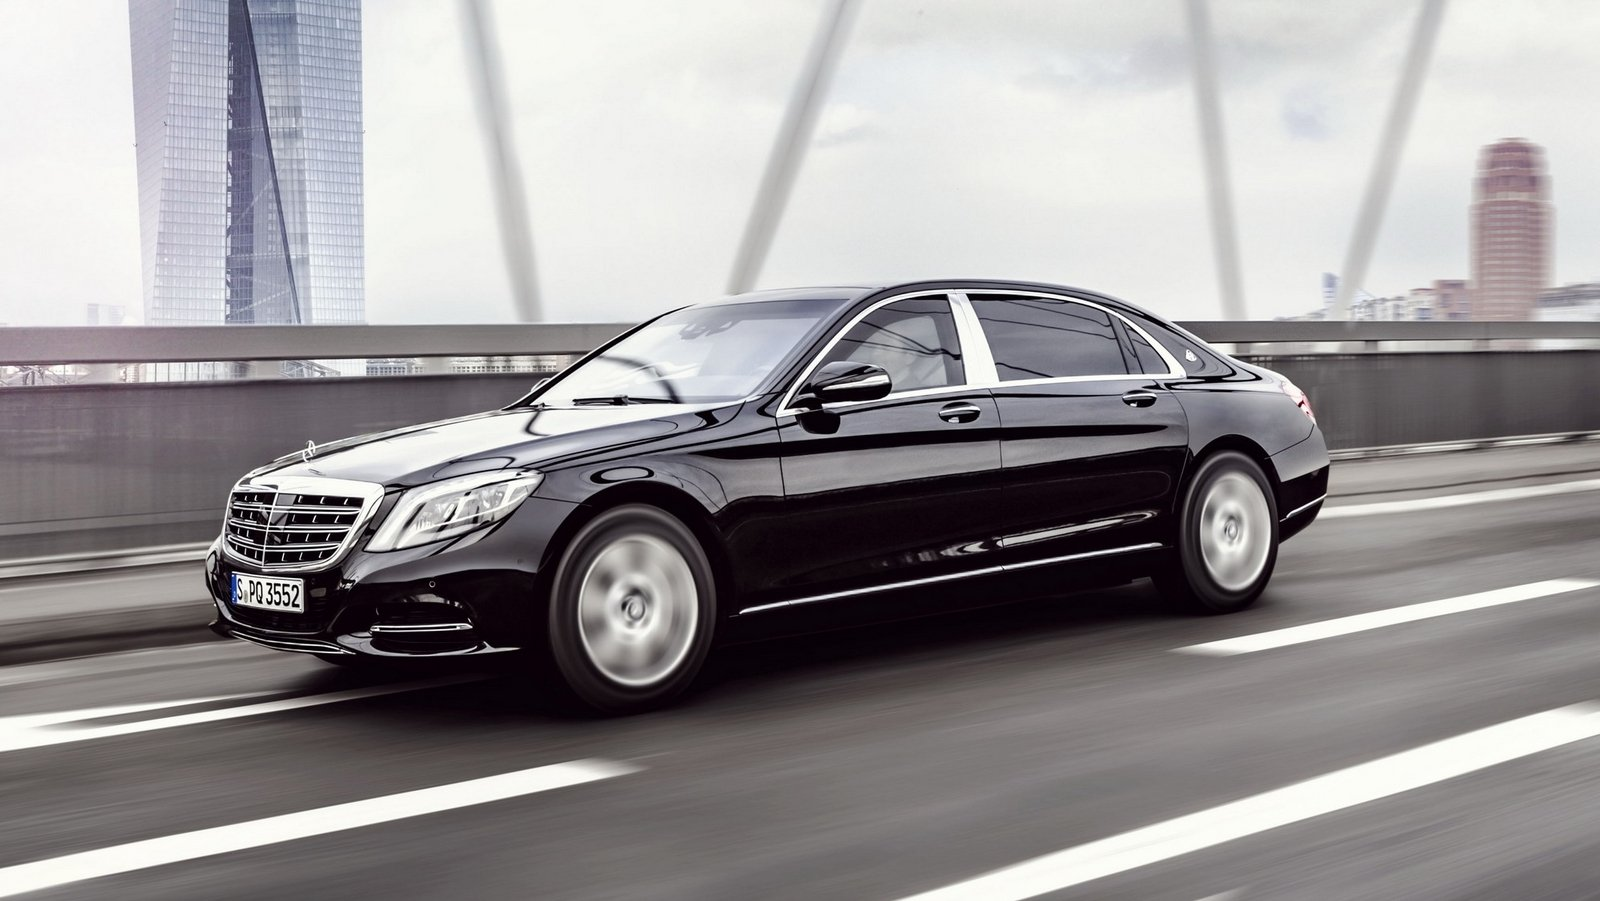 2016 mercedes maybach s600 guard review gallery top speed for Mercedes benz s600 maybach